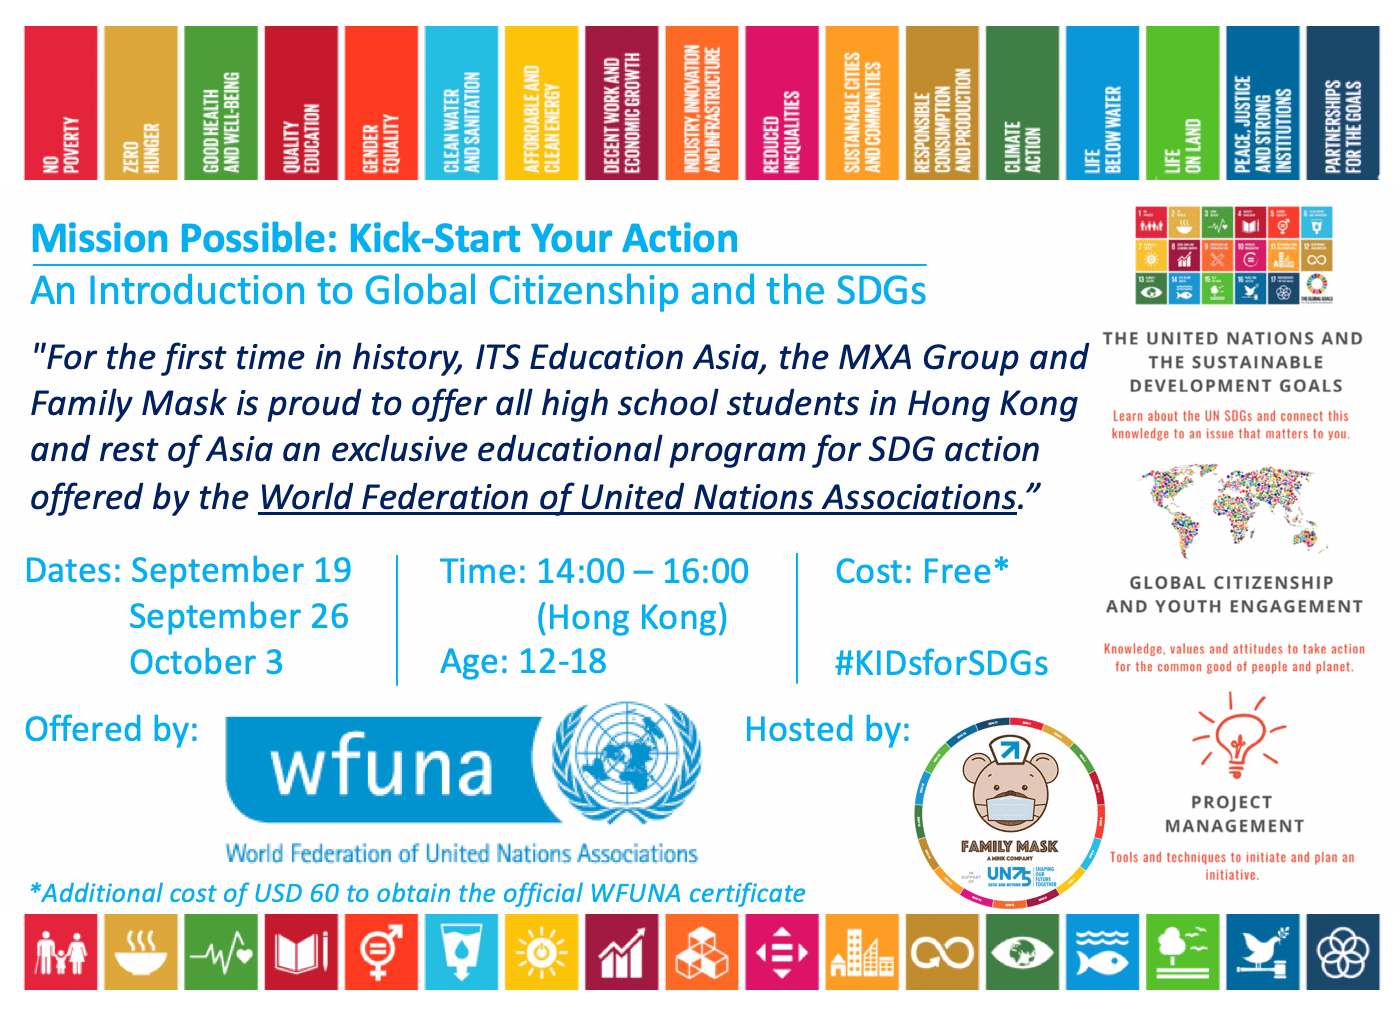 For Mission Possible: Kick-Start Your Action offered by WFUNA